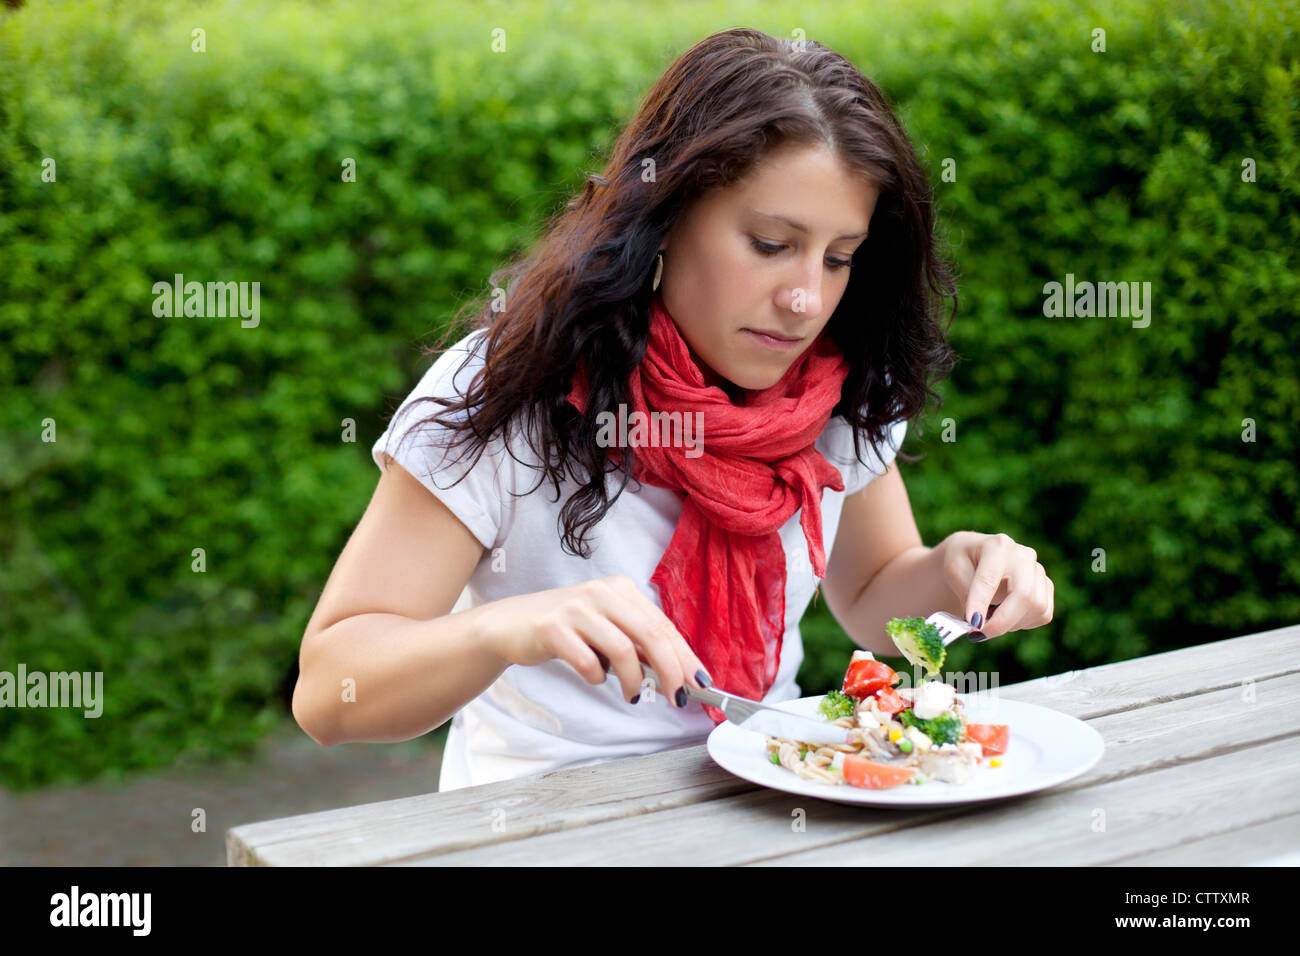 Portrait of a woman with a red scarf seriously eating her meal outdoors Stock Photo